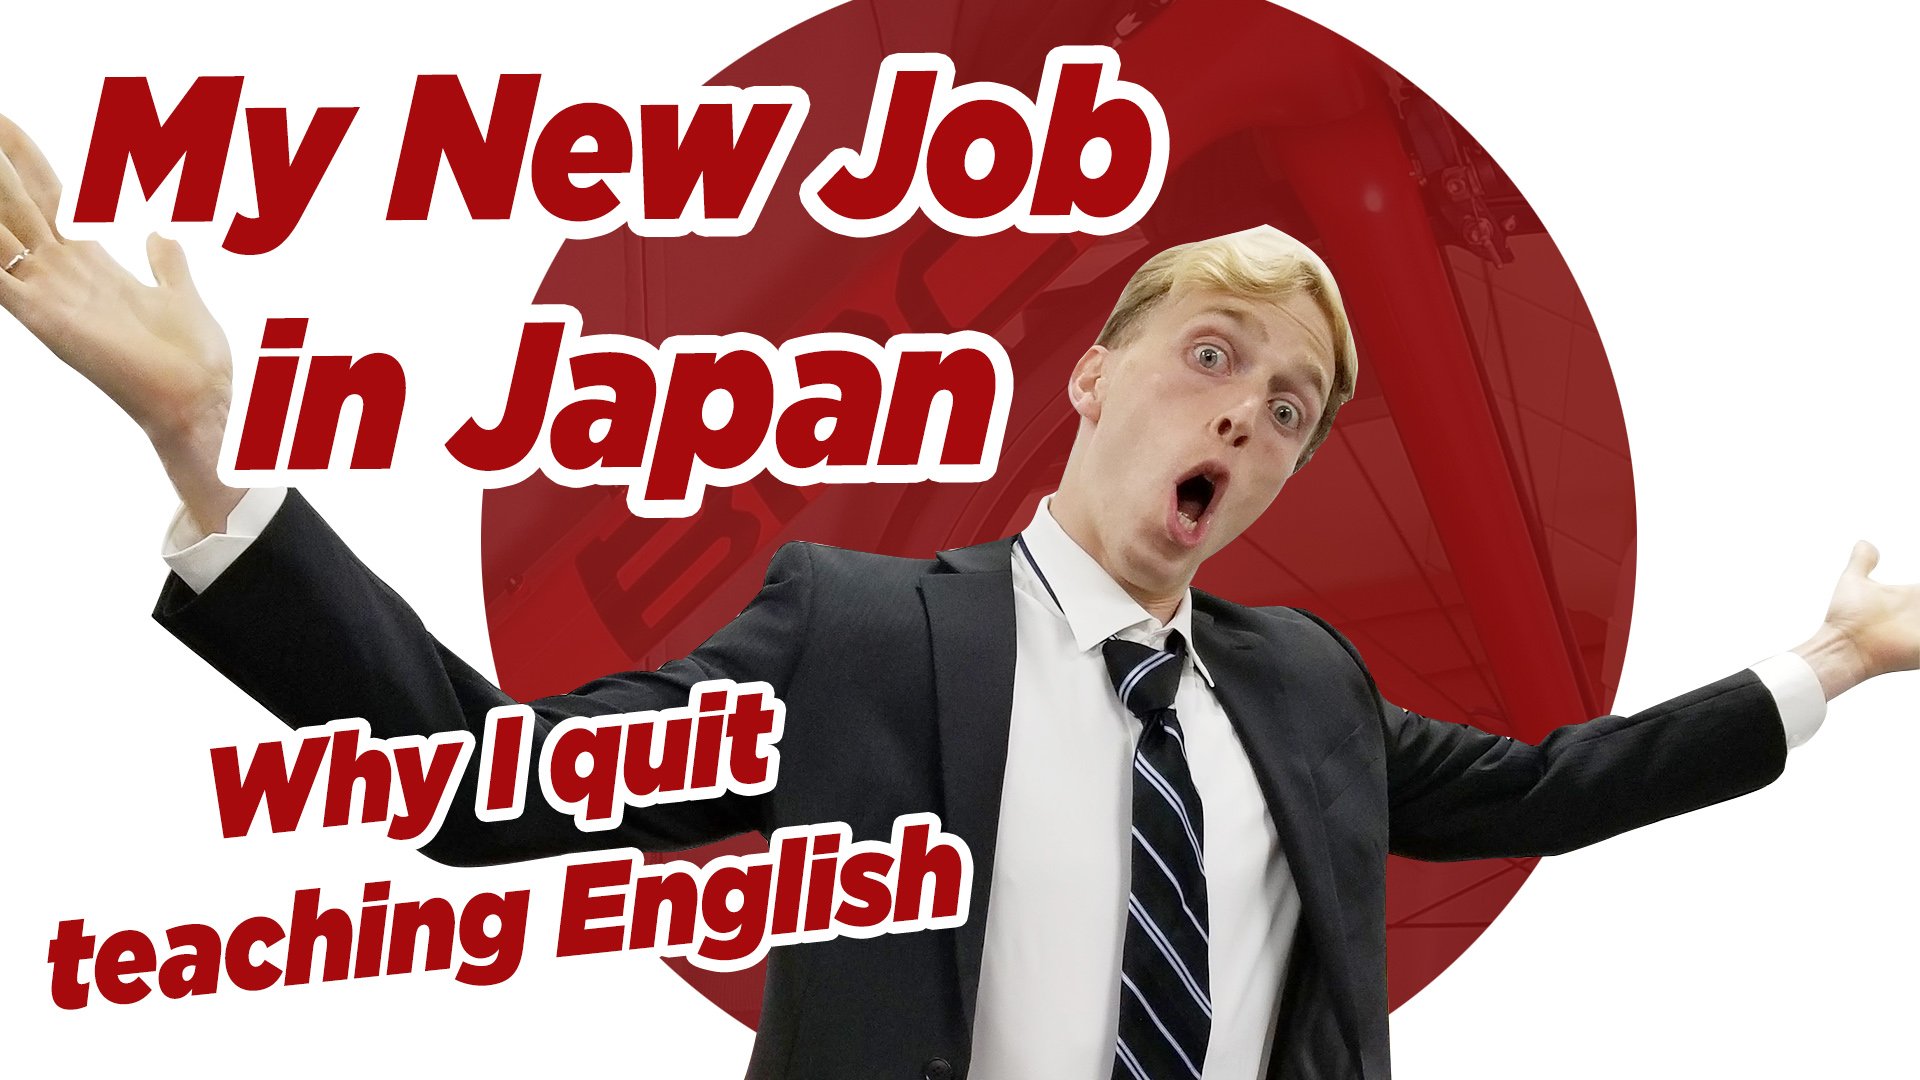 My New Job in Japan, Why I Quit Teaching English - Two Wheel Cruise